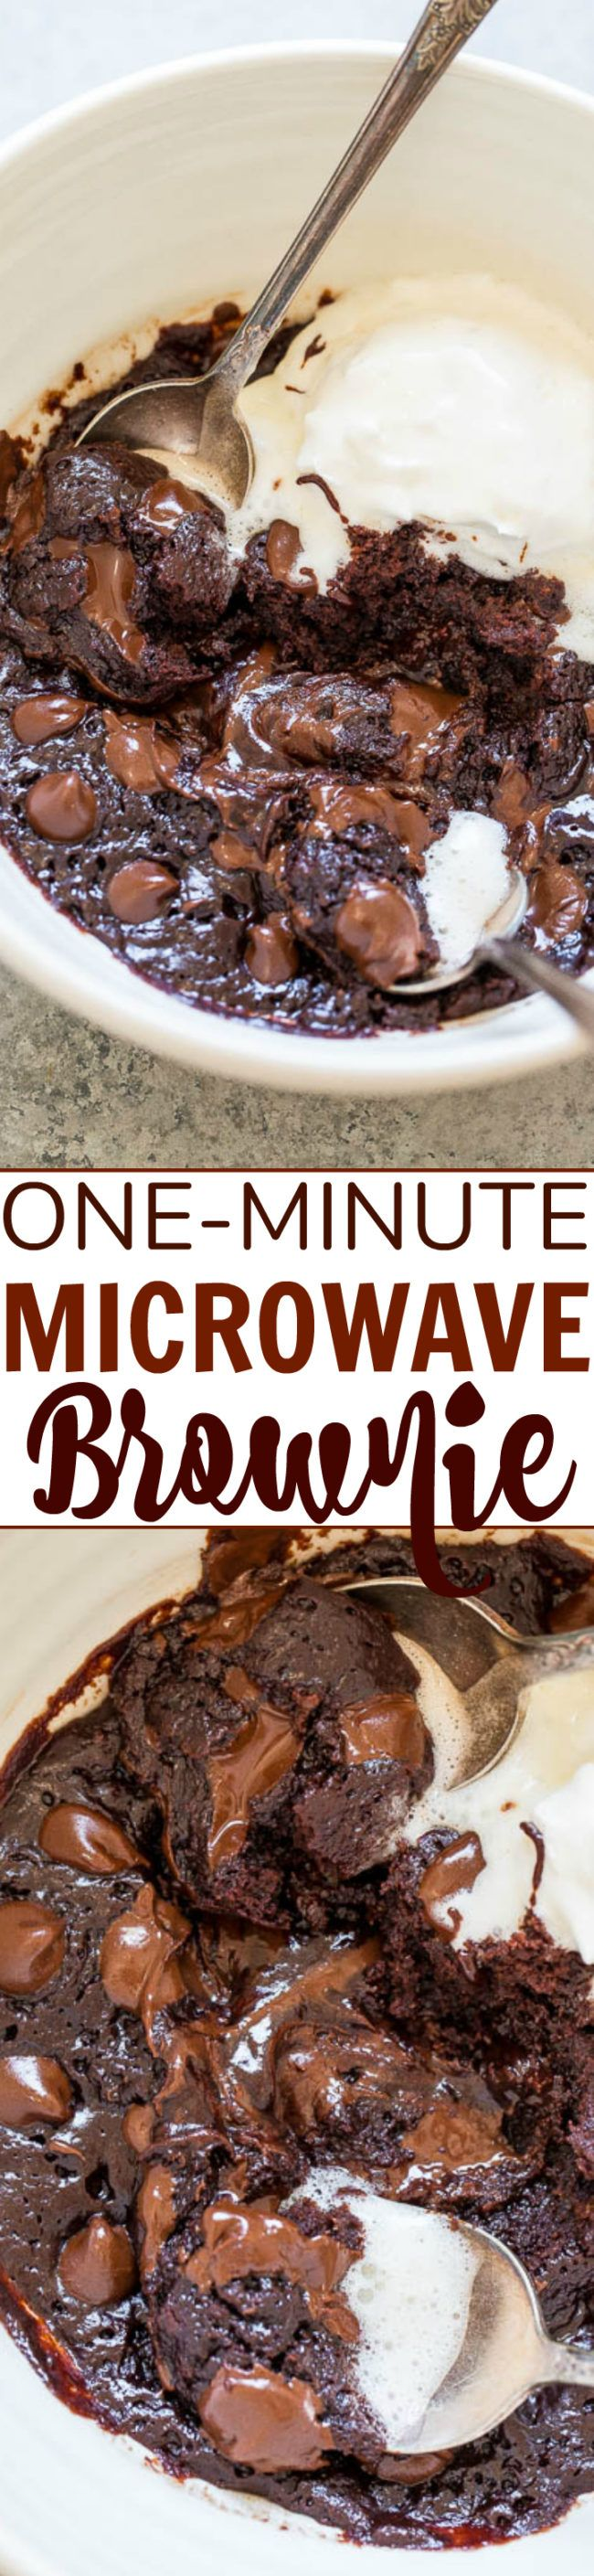 Microwave Brownie in a Mug (1-Minute Recipe!) - Averie ...